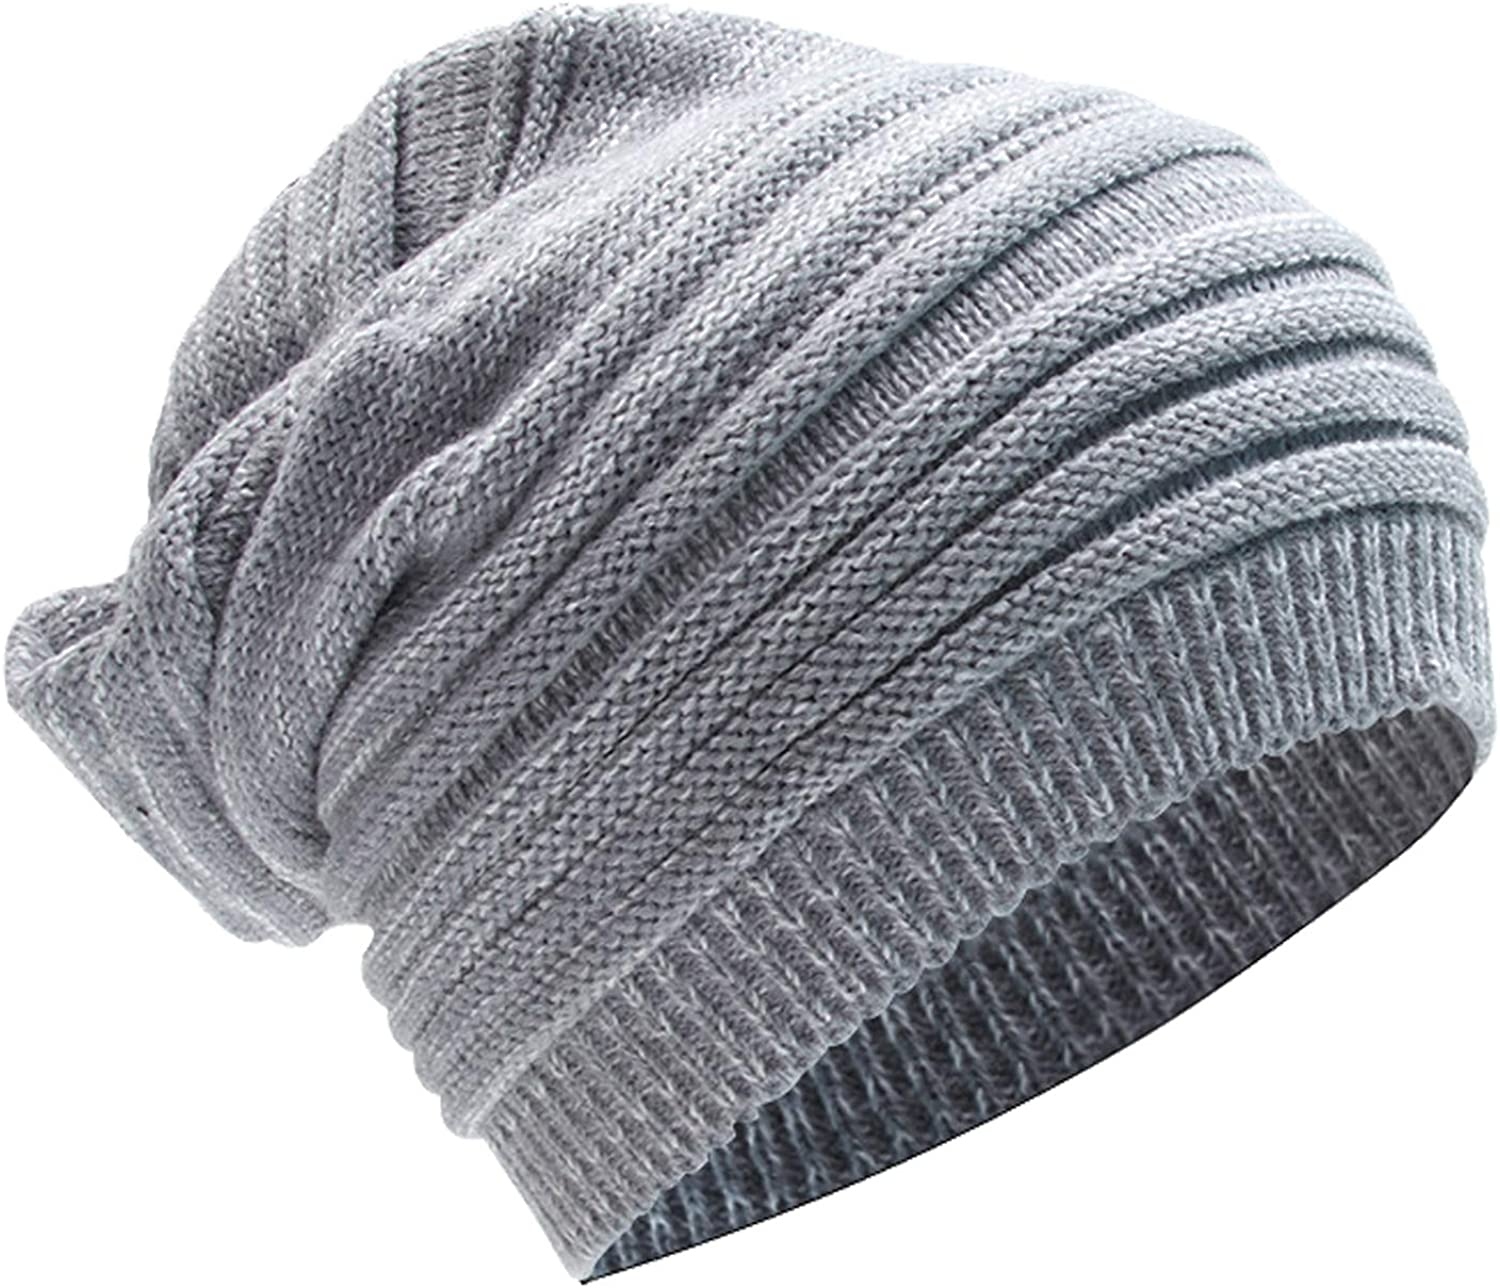 DIAFILM Knit Beanie Hats, Winter Slouchy Hat Oversized Unisex Trendy Skully Warm Mixing Color Chunky Soft Stretch Cable